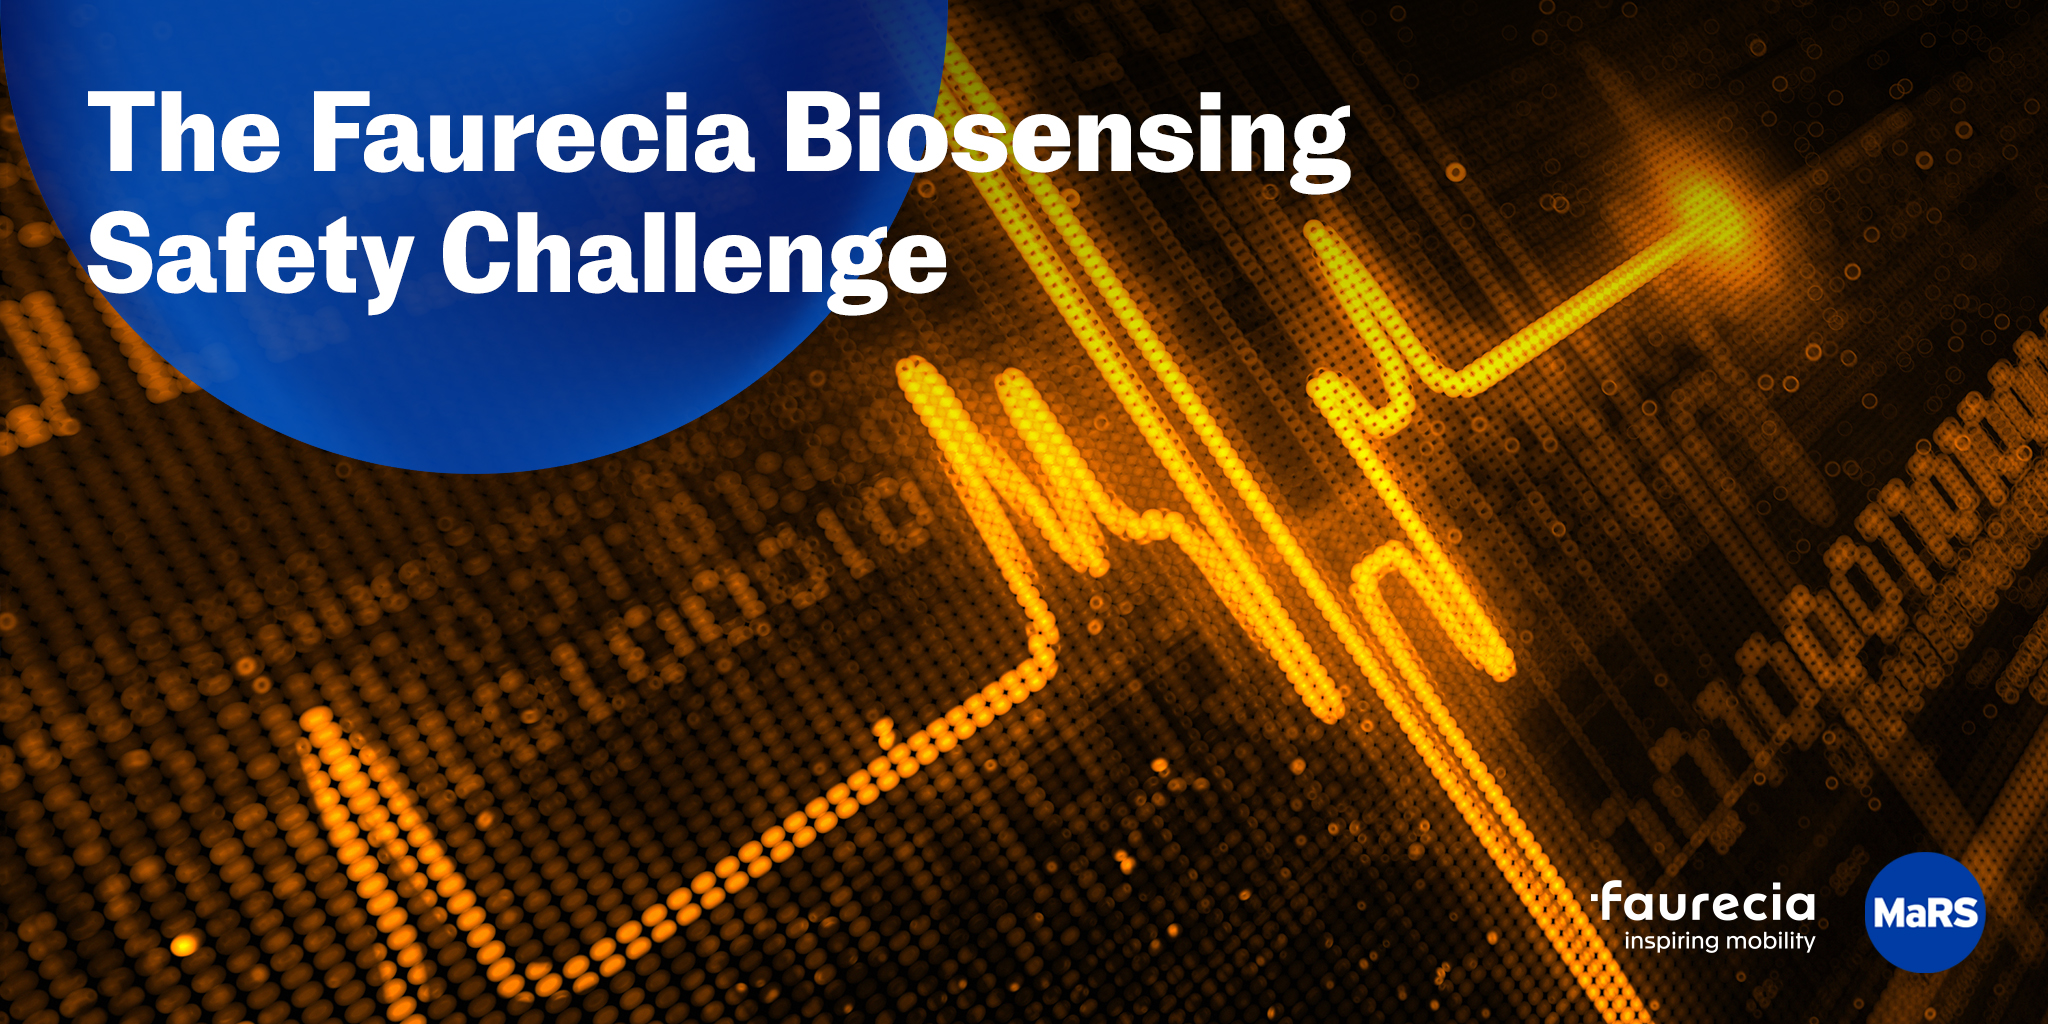 Announcing the Faurecia Biosensing Safety Challenge Winner